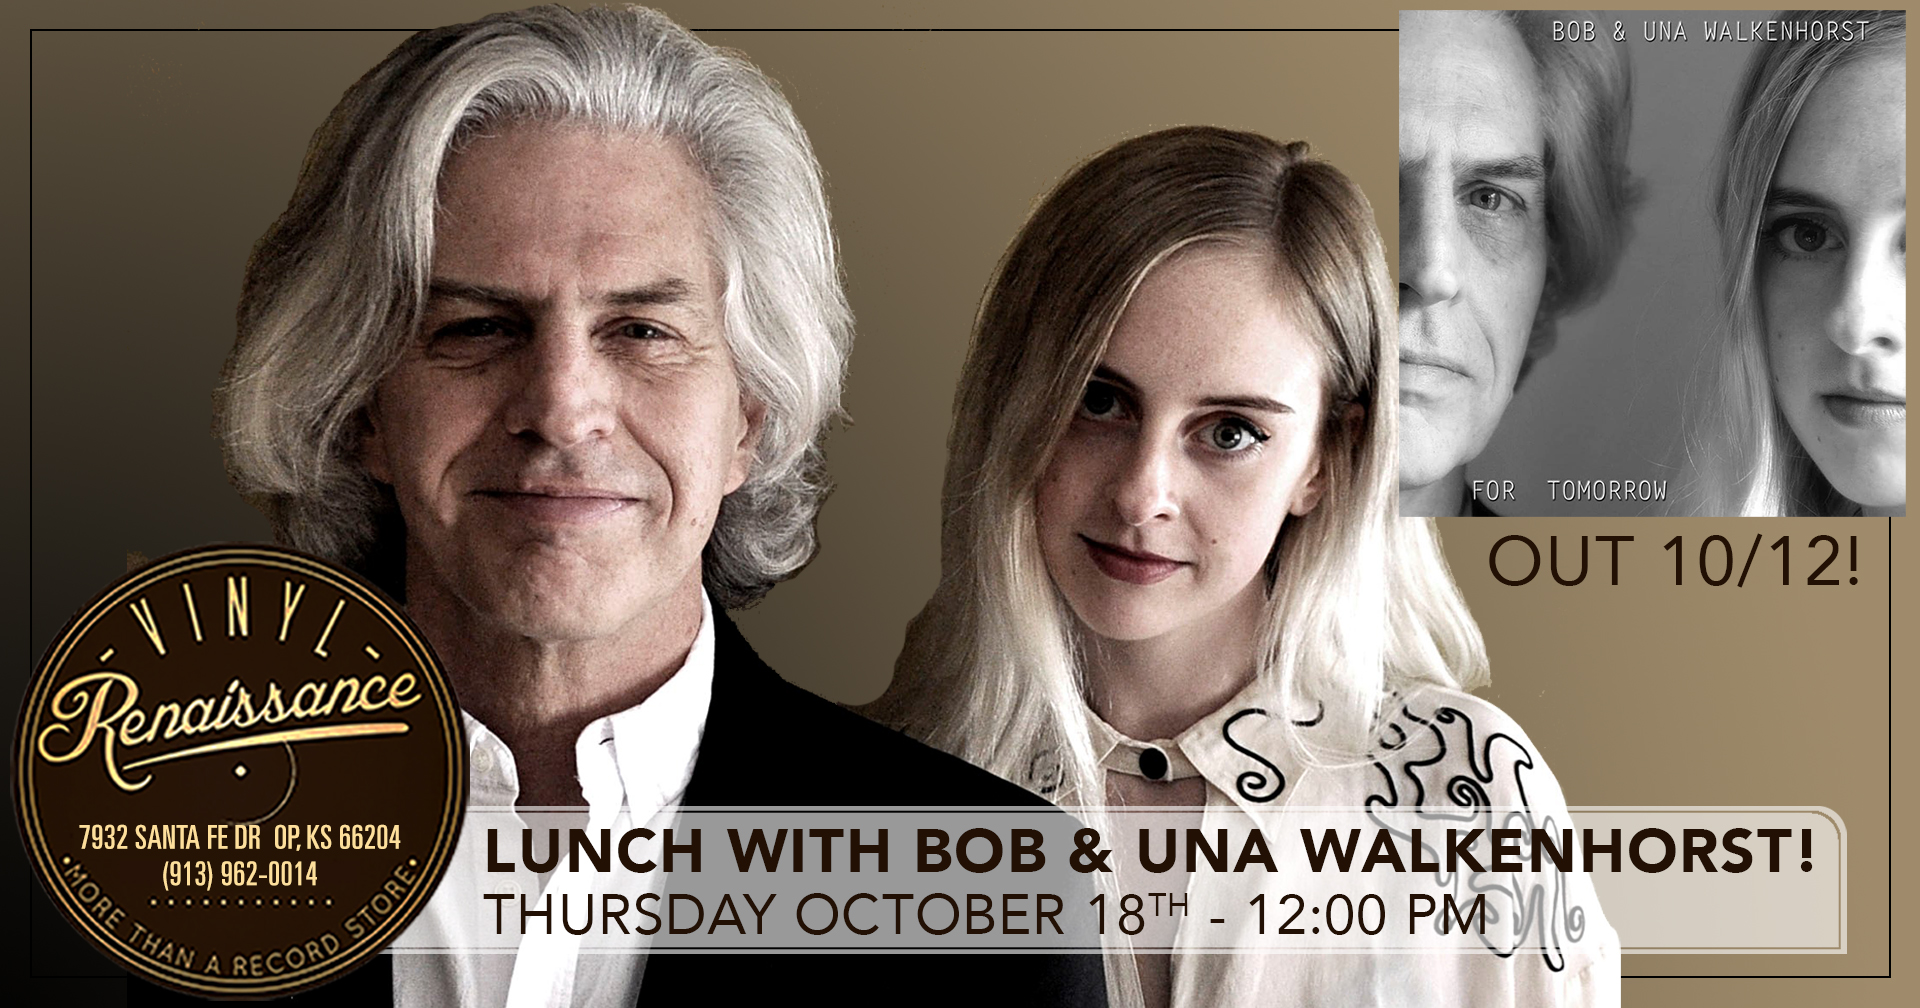 Lunch with Bob & Una Walkenhorst! Live In Store